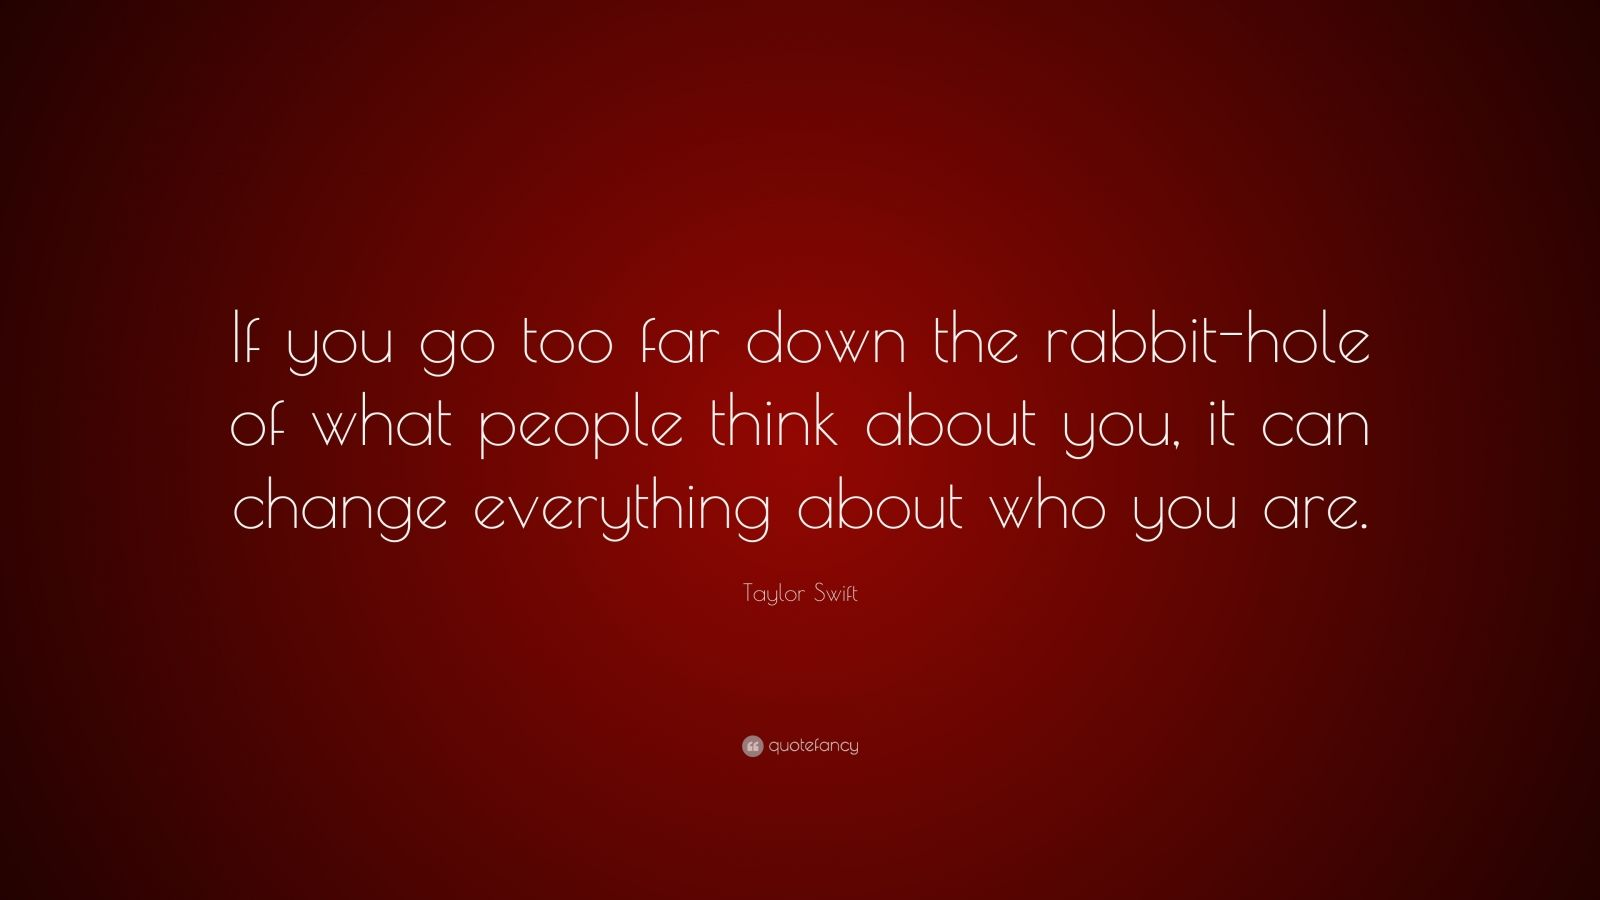 Taylor Swift Quote If You Go Too Far Down The Rabbit Hole Of